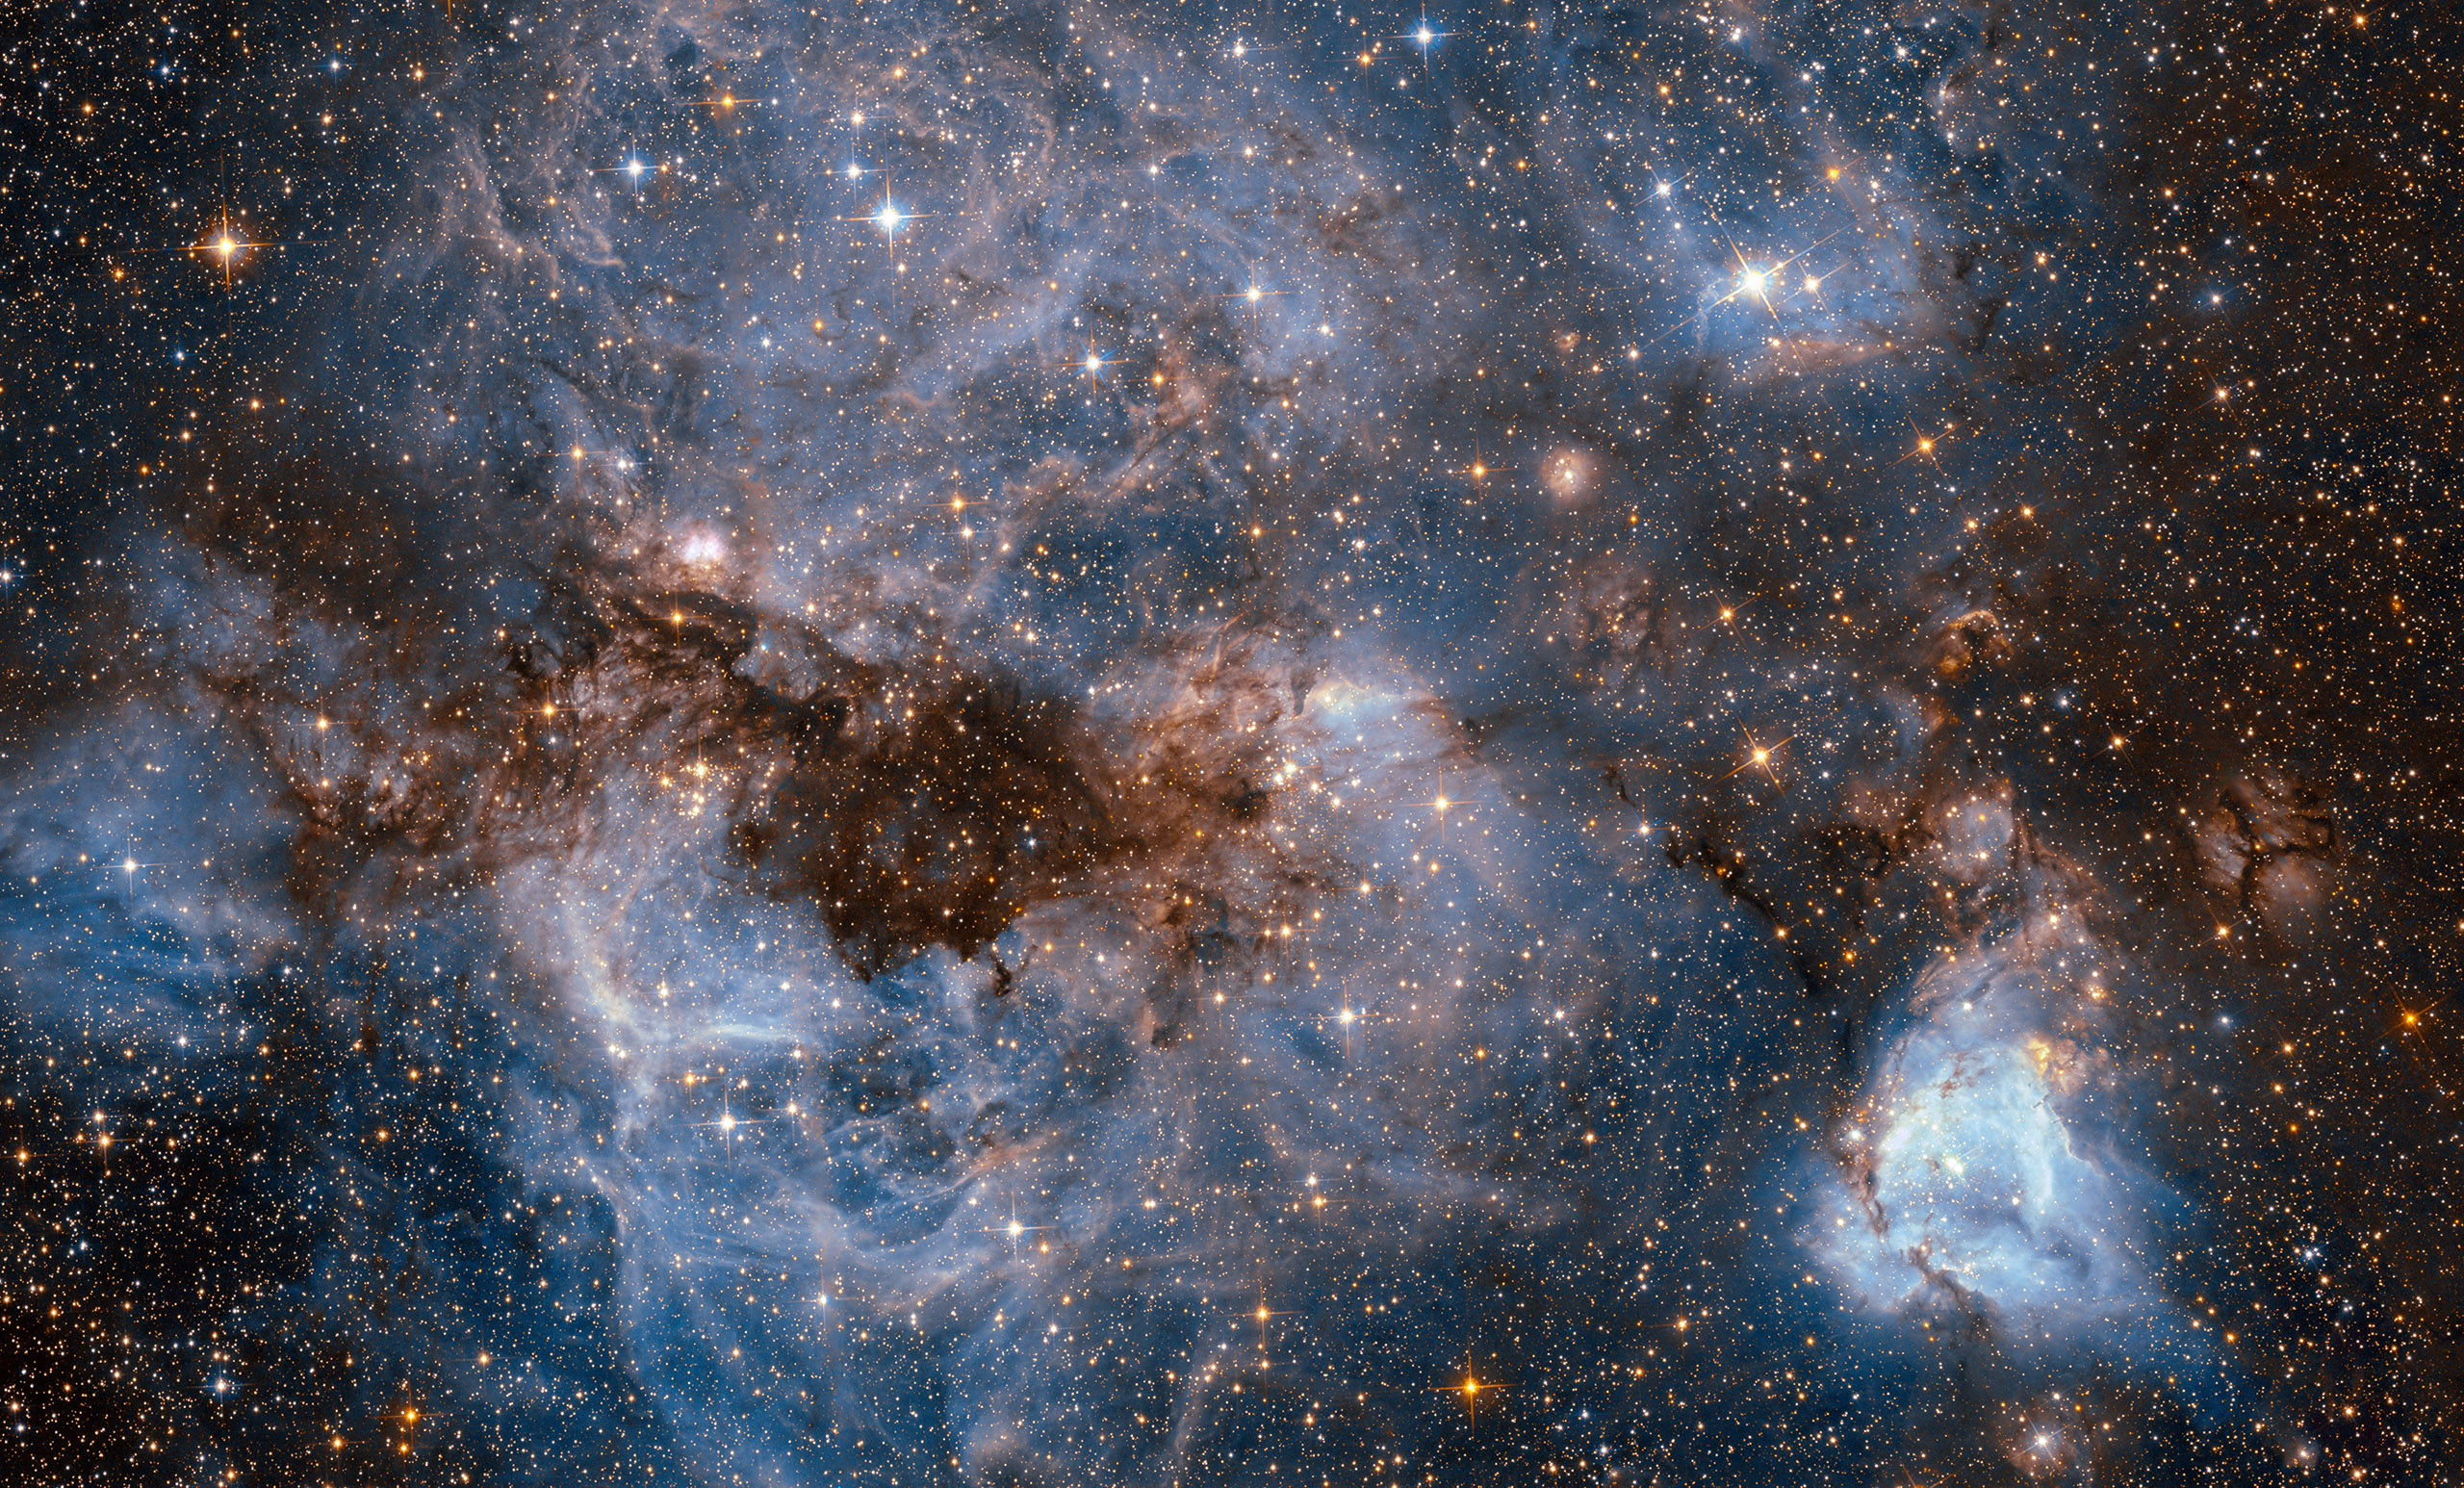 A maelstrom of glowing gas and dark dust within one of the Milky Way's satellite galaxies, the Large Magellanic Cloud, Sept. 5, 2016.